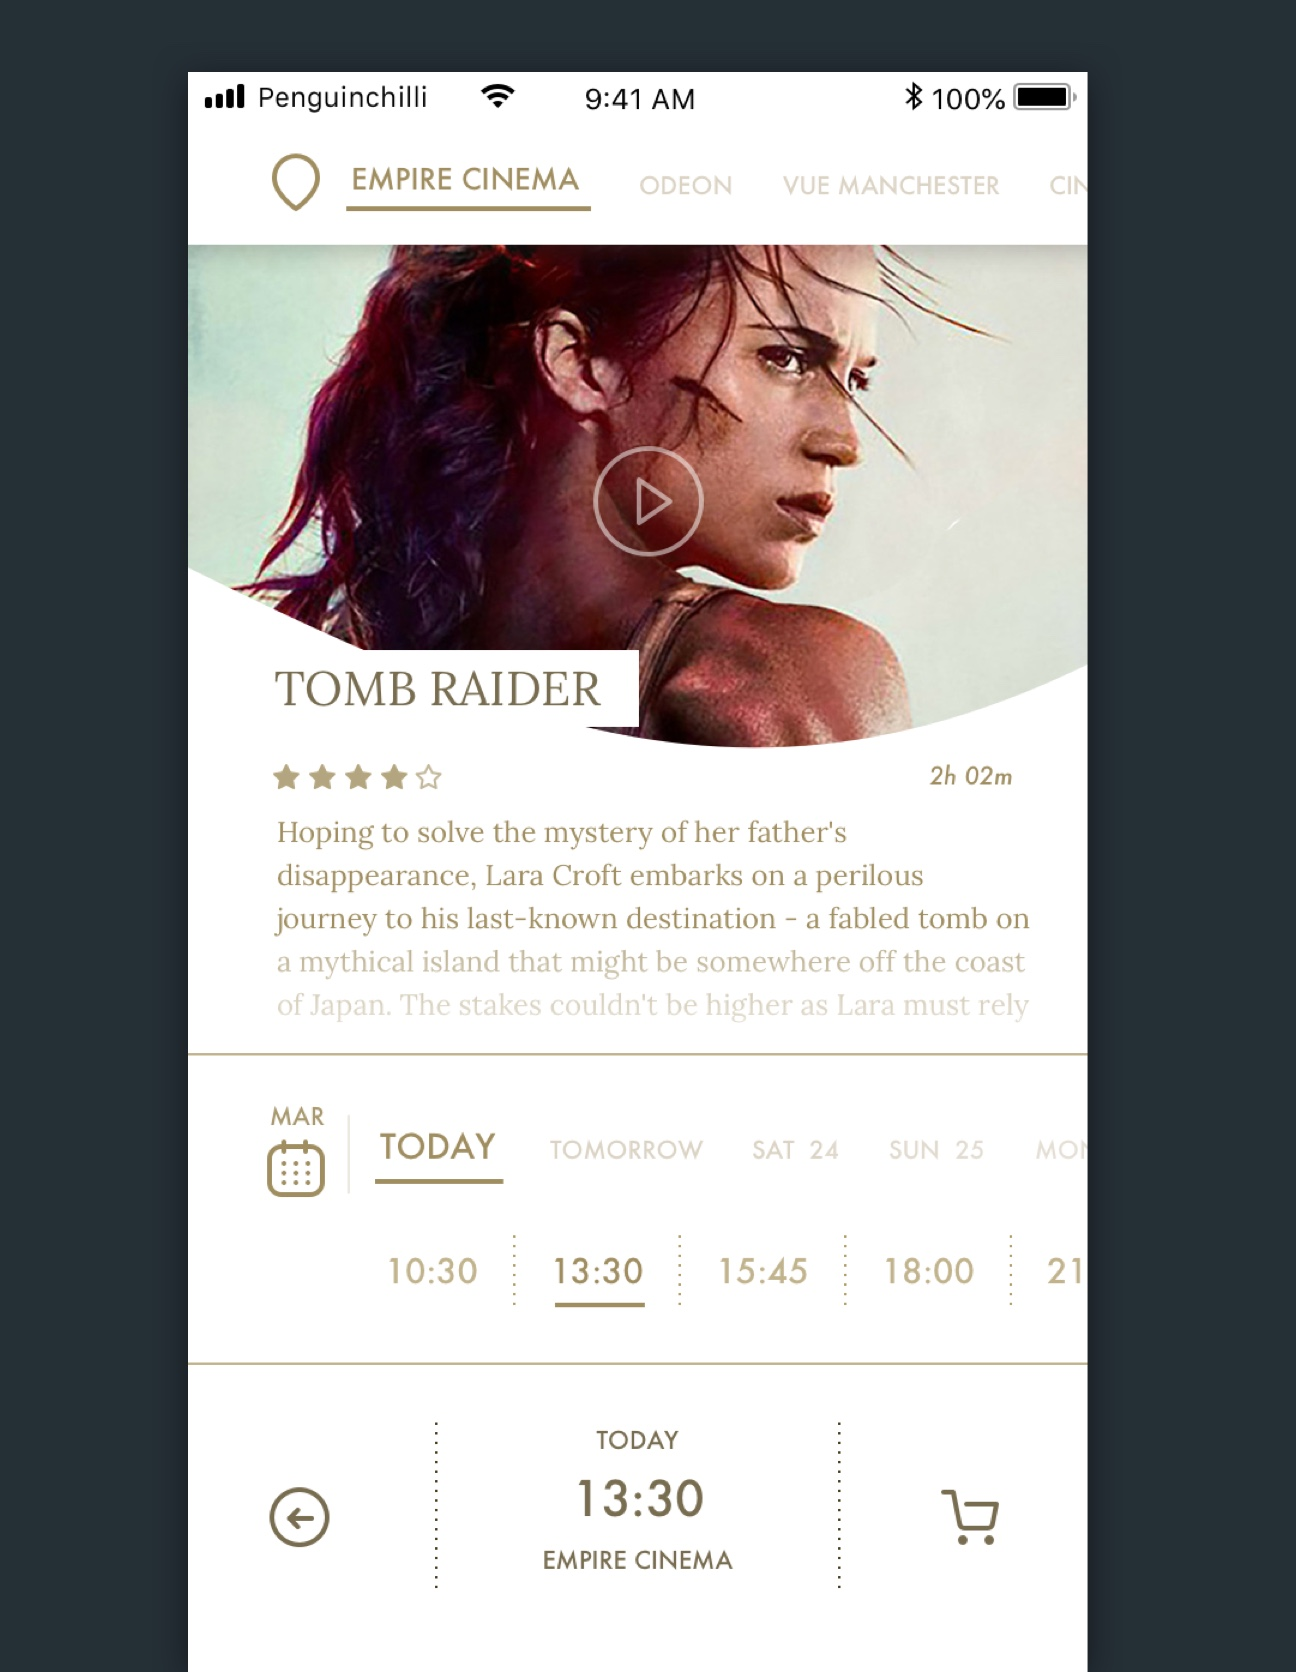 The film page details of the movie booking app